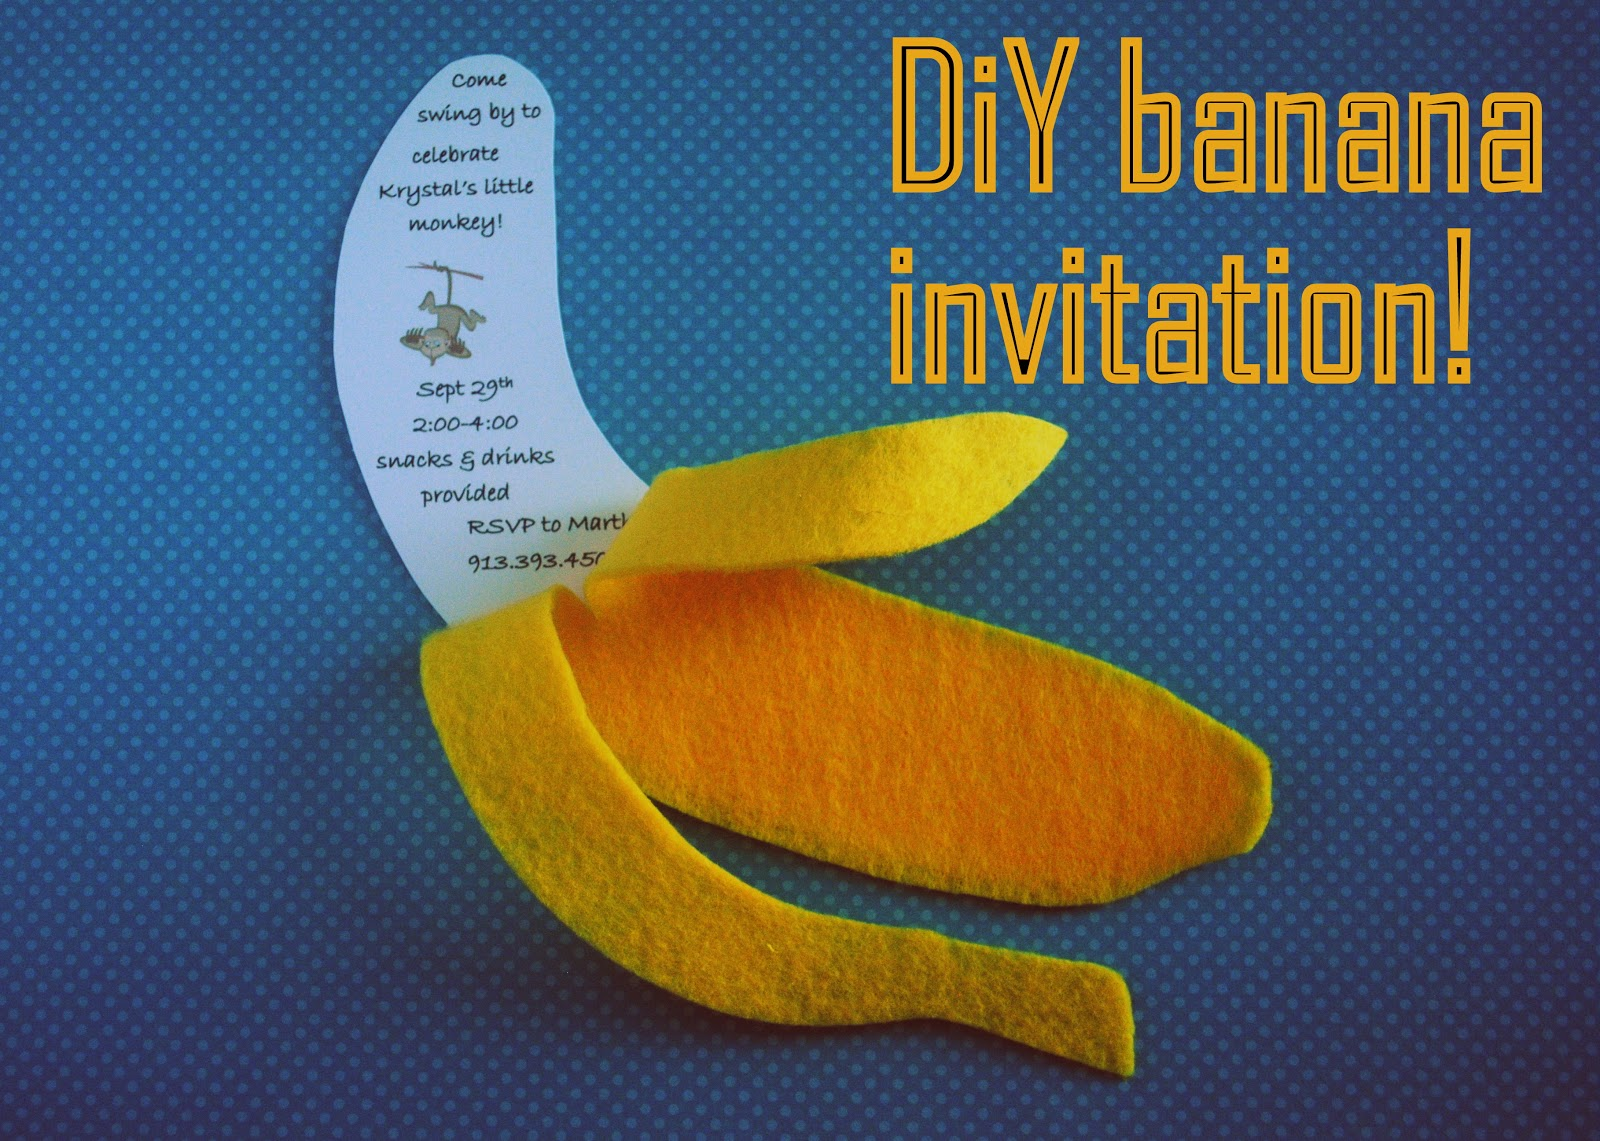 i thought of it second.: DiY banana invitation.